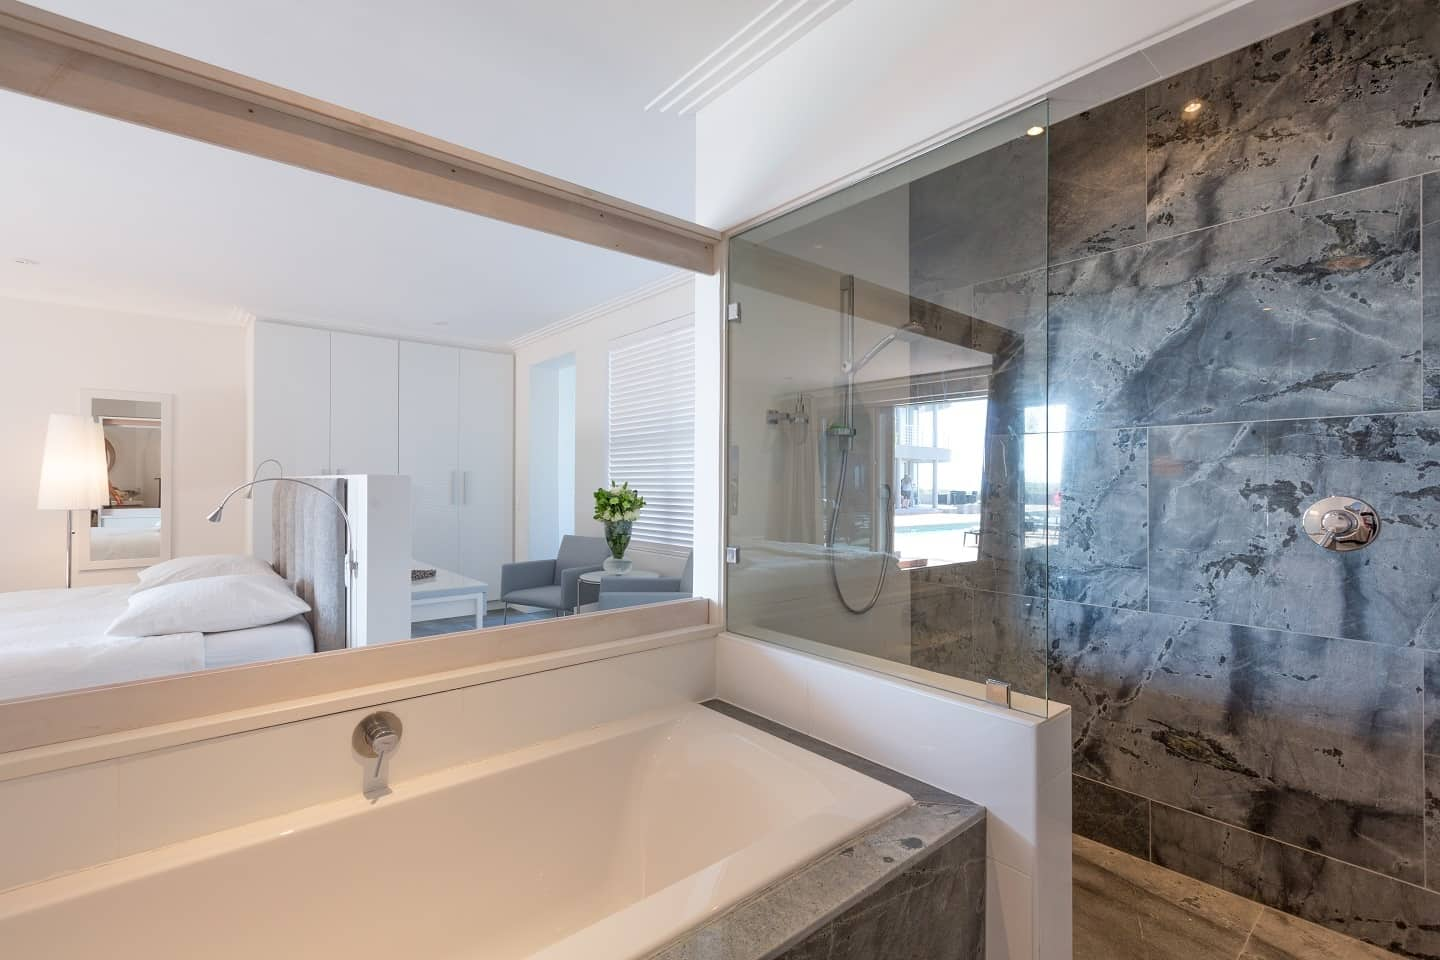 Atlantic Palms Luxury Apartments Sunset Beach Cape Town - Luxury apartments bathrooms